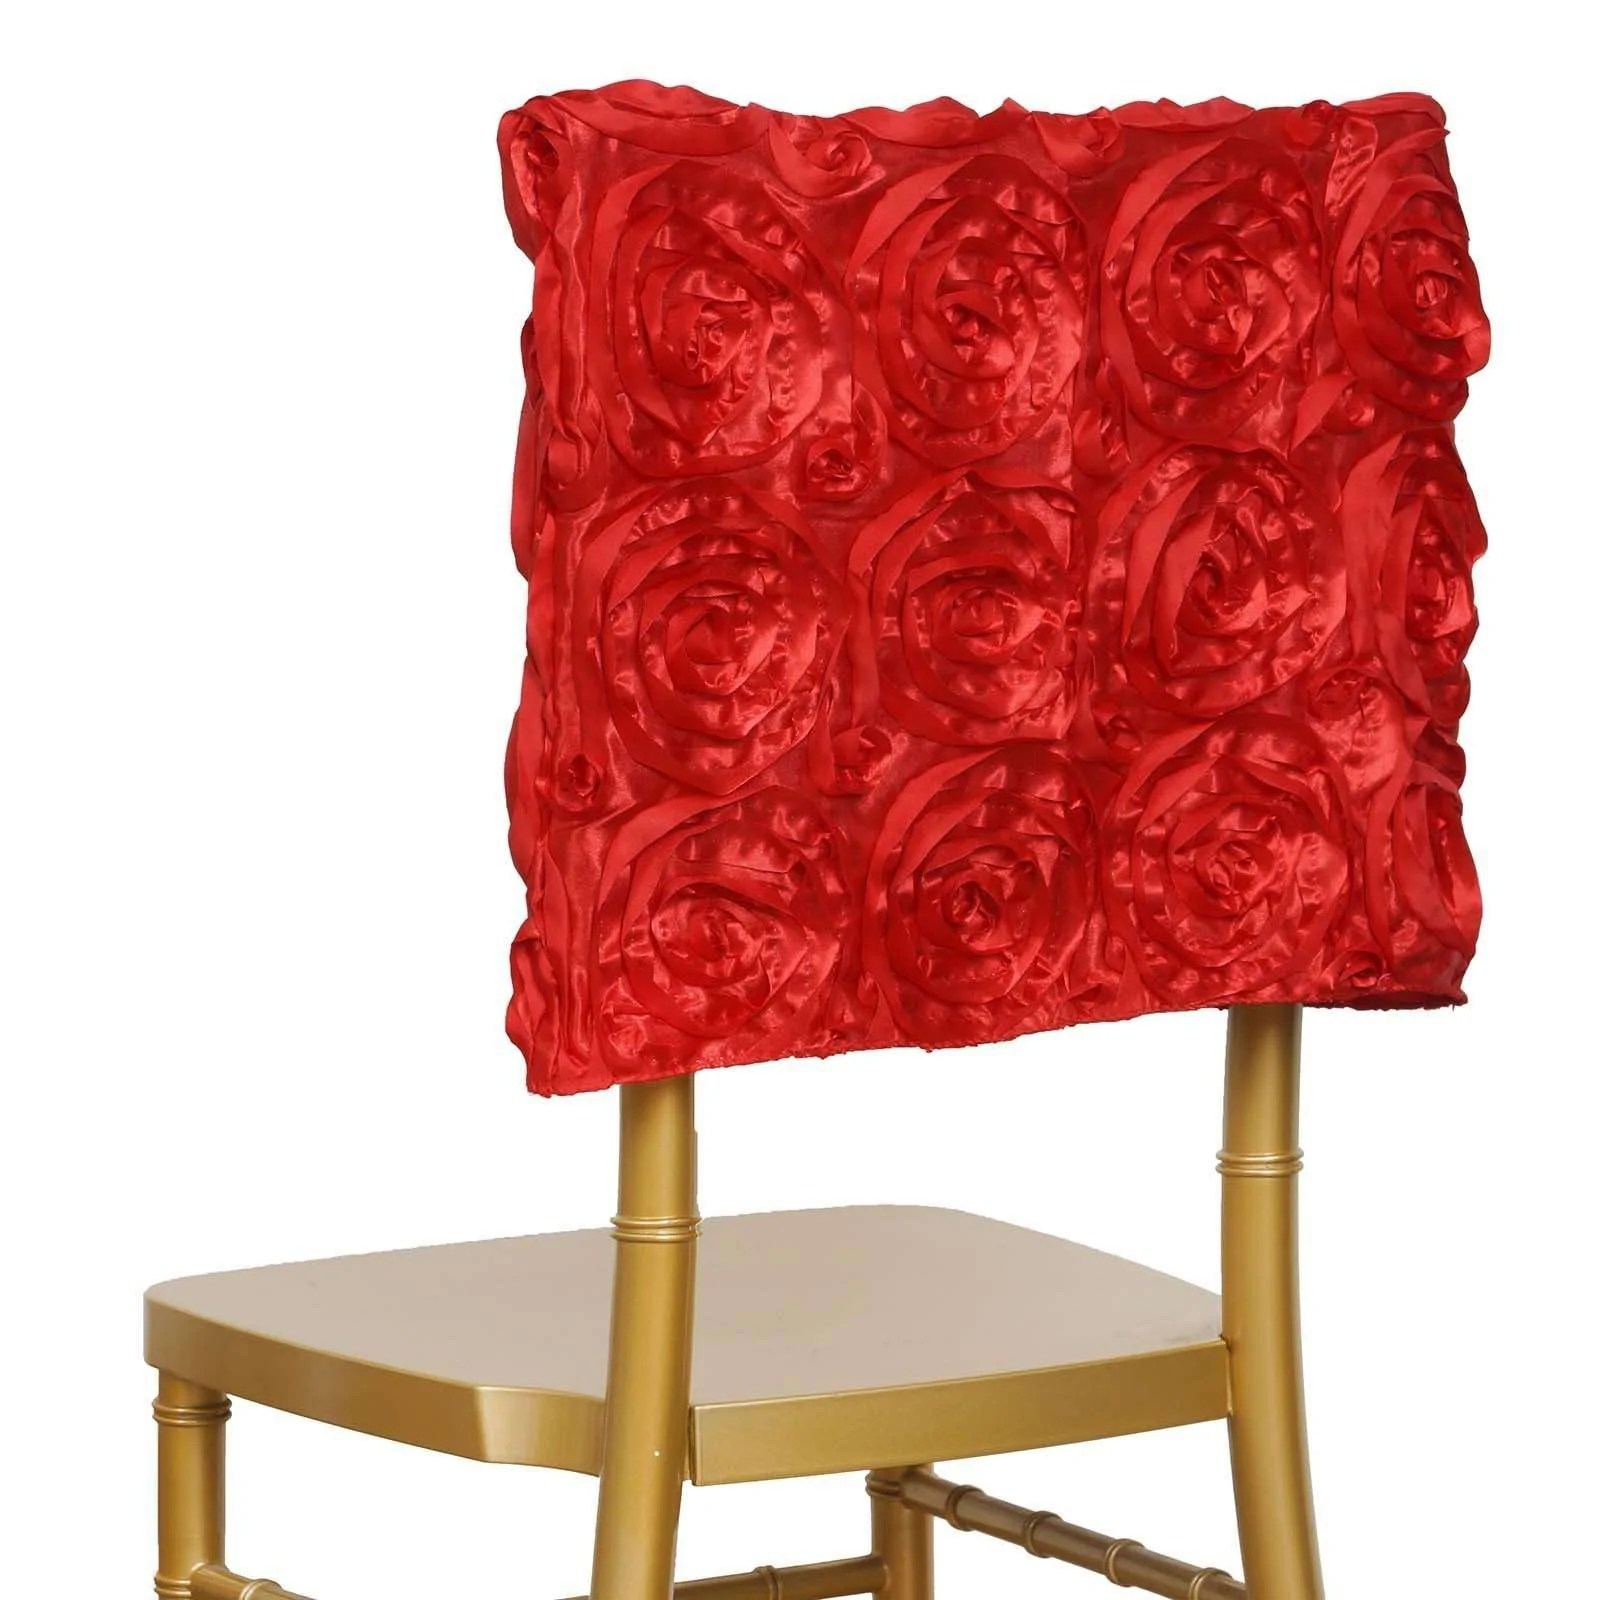 chiavari chair covers ebay pottery barn anywhere cover only 25 grandiose rosette cap wedding reception